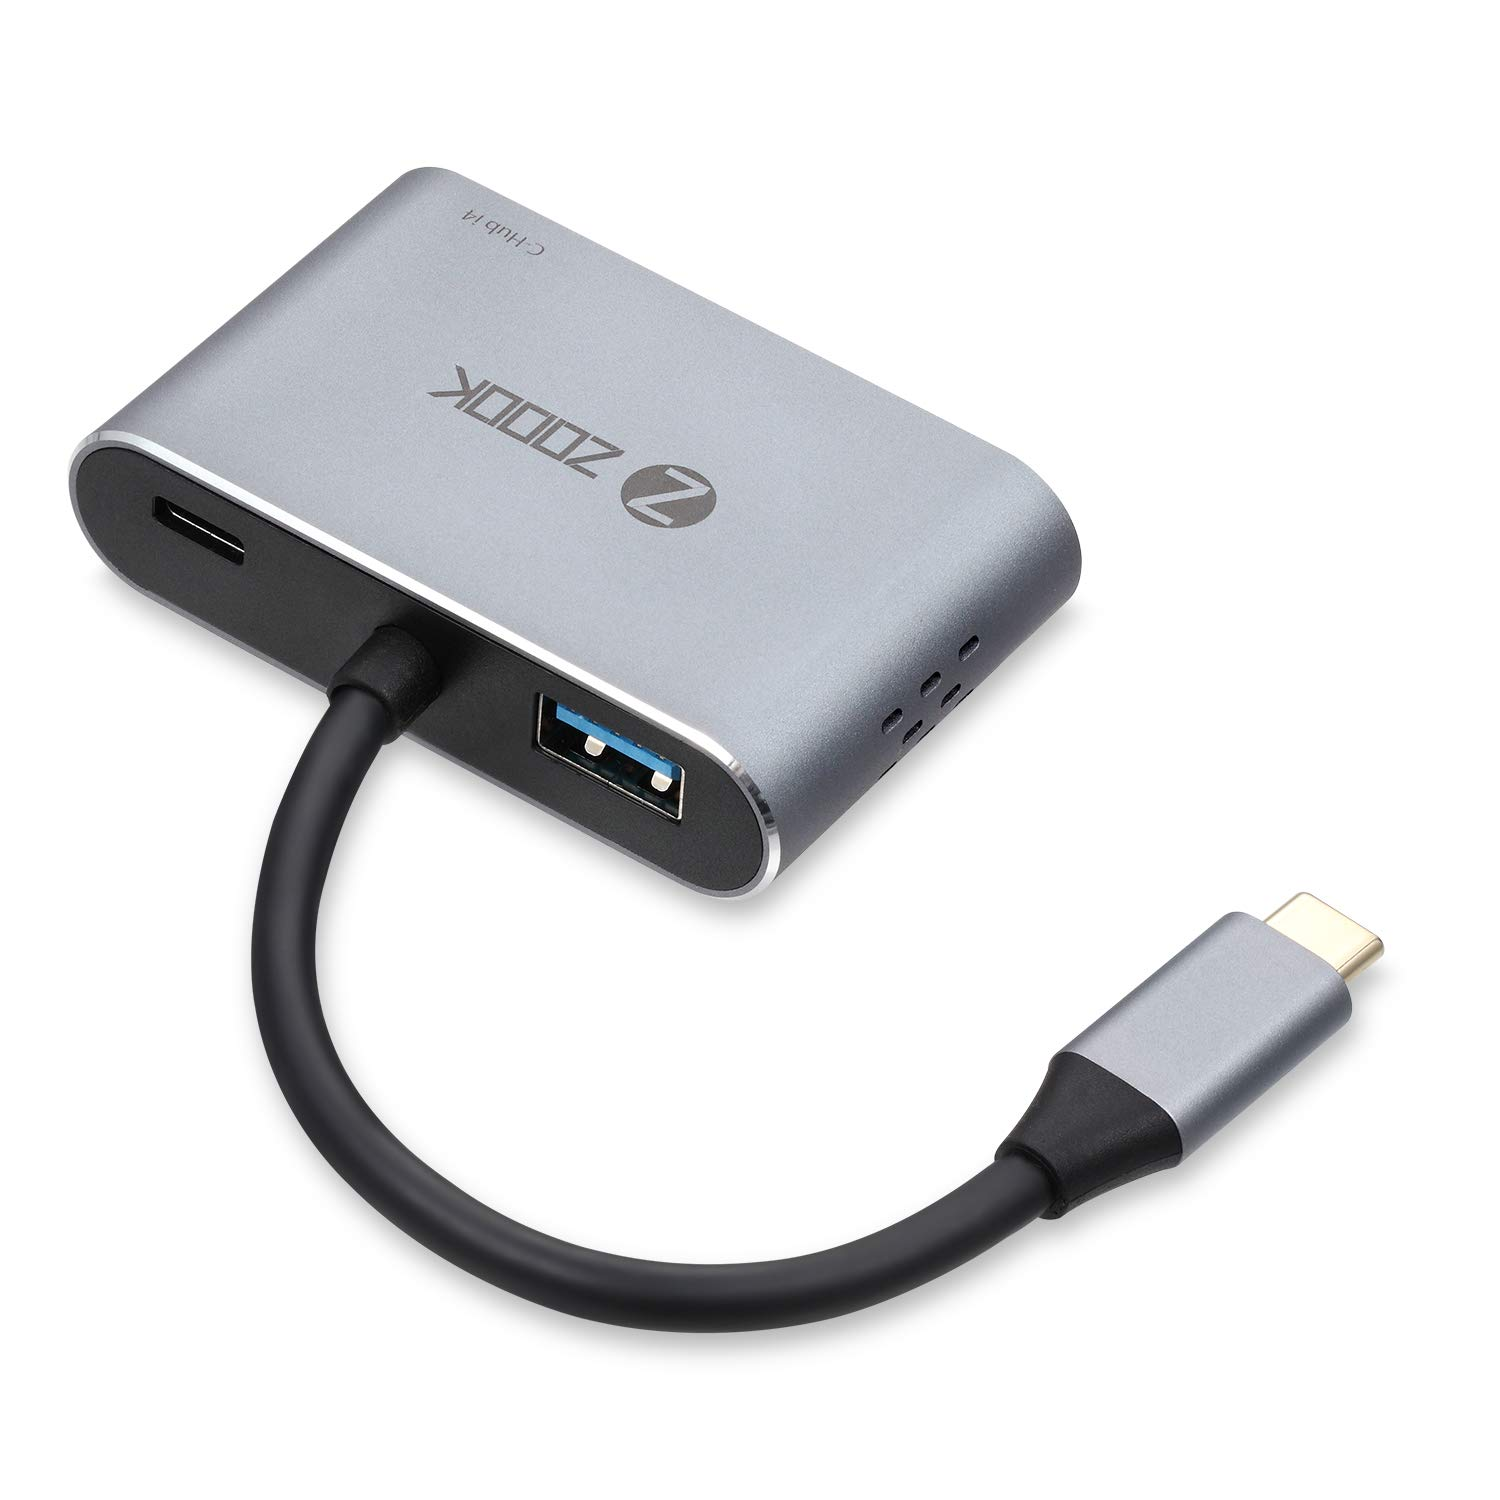 Zoook USB C to 4K HDMI VGA Adapter USB C Hub with 4K HDMI,1080P VGA,USB 3.0,USB C PD Charging Type C Multiport Adapter for MacBook Pro/Nintendo Switchi/Pad Pro/Dell XPS/Samsung